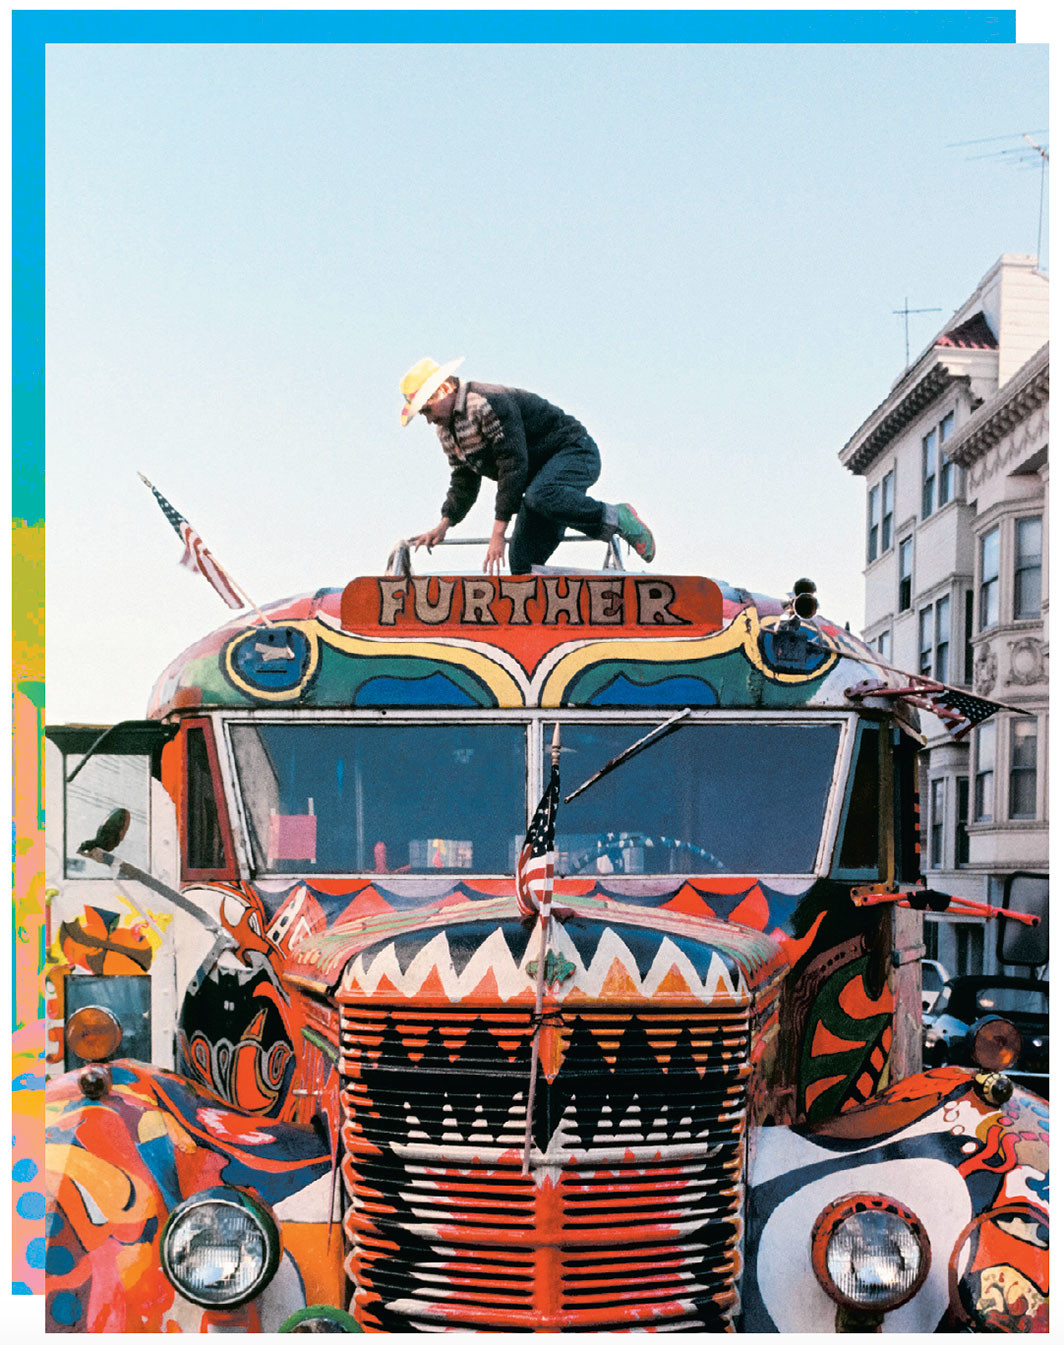 "Ken Kesey's Merry Pranksters bus ""Further,"" San Francisco, 1966. Ted Streshinsky Photographic Archive, Bancroft Library, U.C. Berkeley, Courtesy of Taschen/From Tom Wolfe's The Electric Kool-Aid Acid Test (Taschen, 2014)"